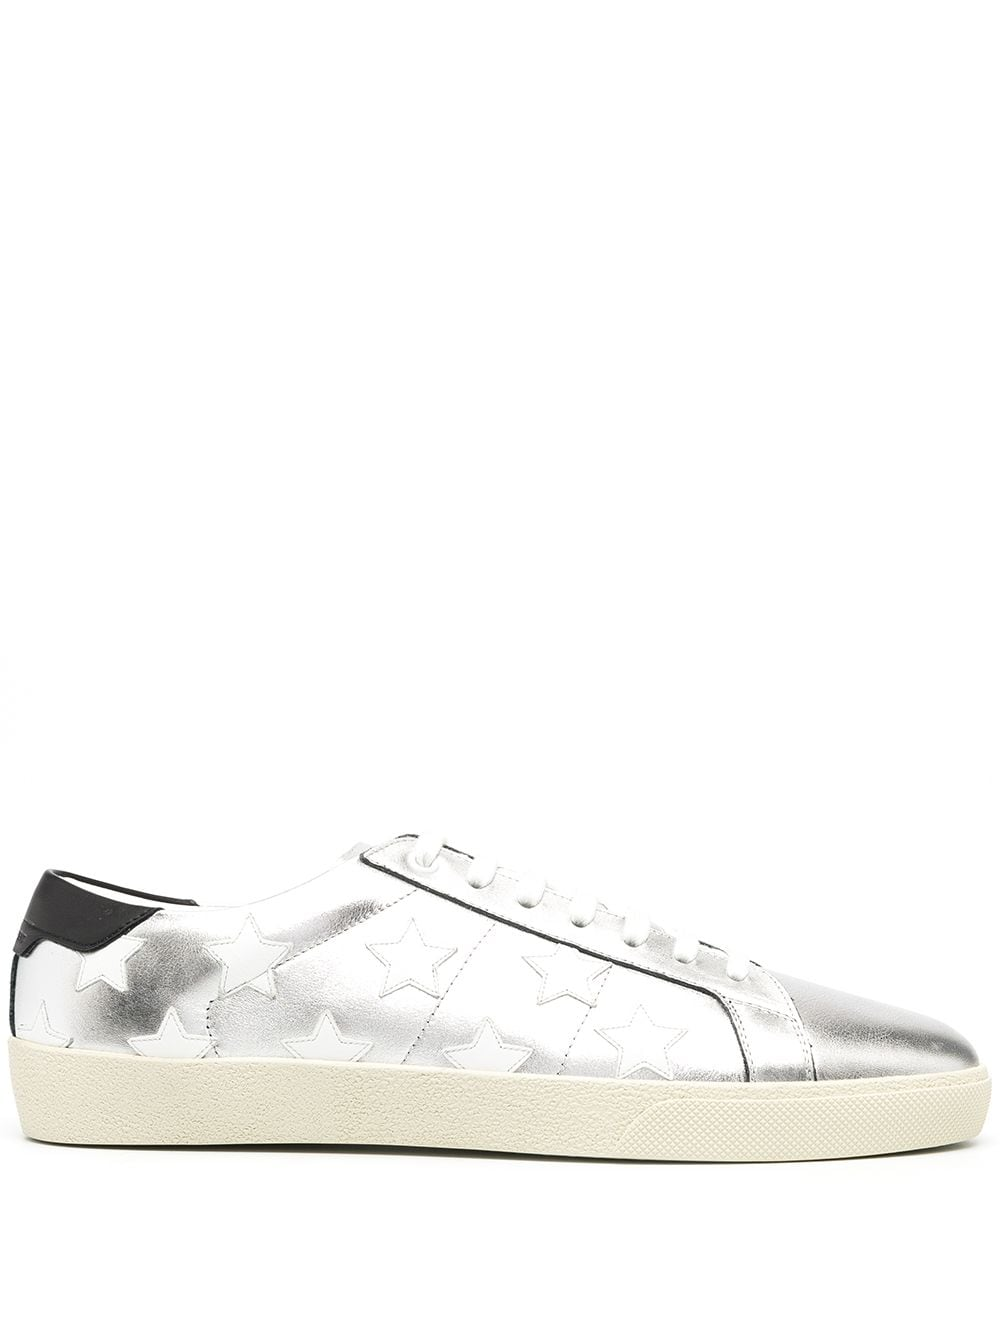 SAINT LAURENT MEN COURT CLASSIC STAR CALIFORNIA SNEAKERS